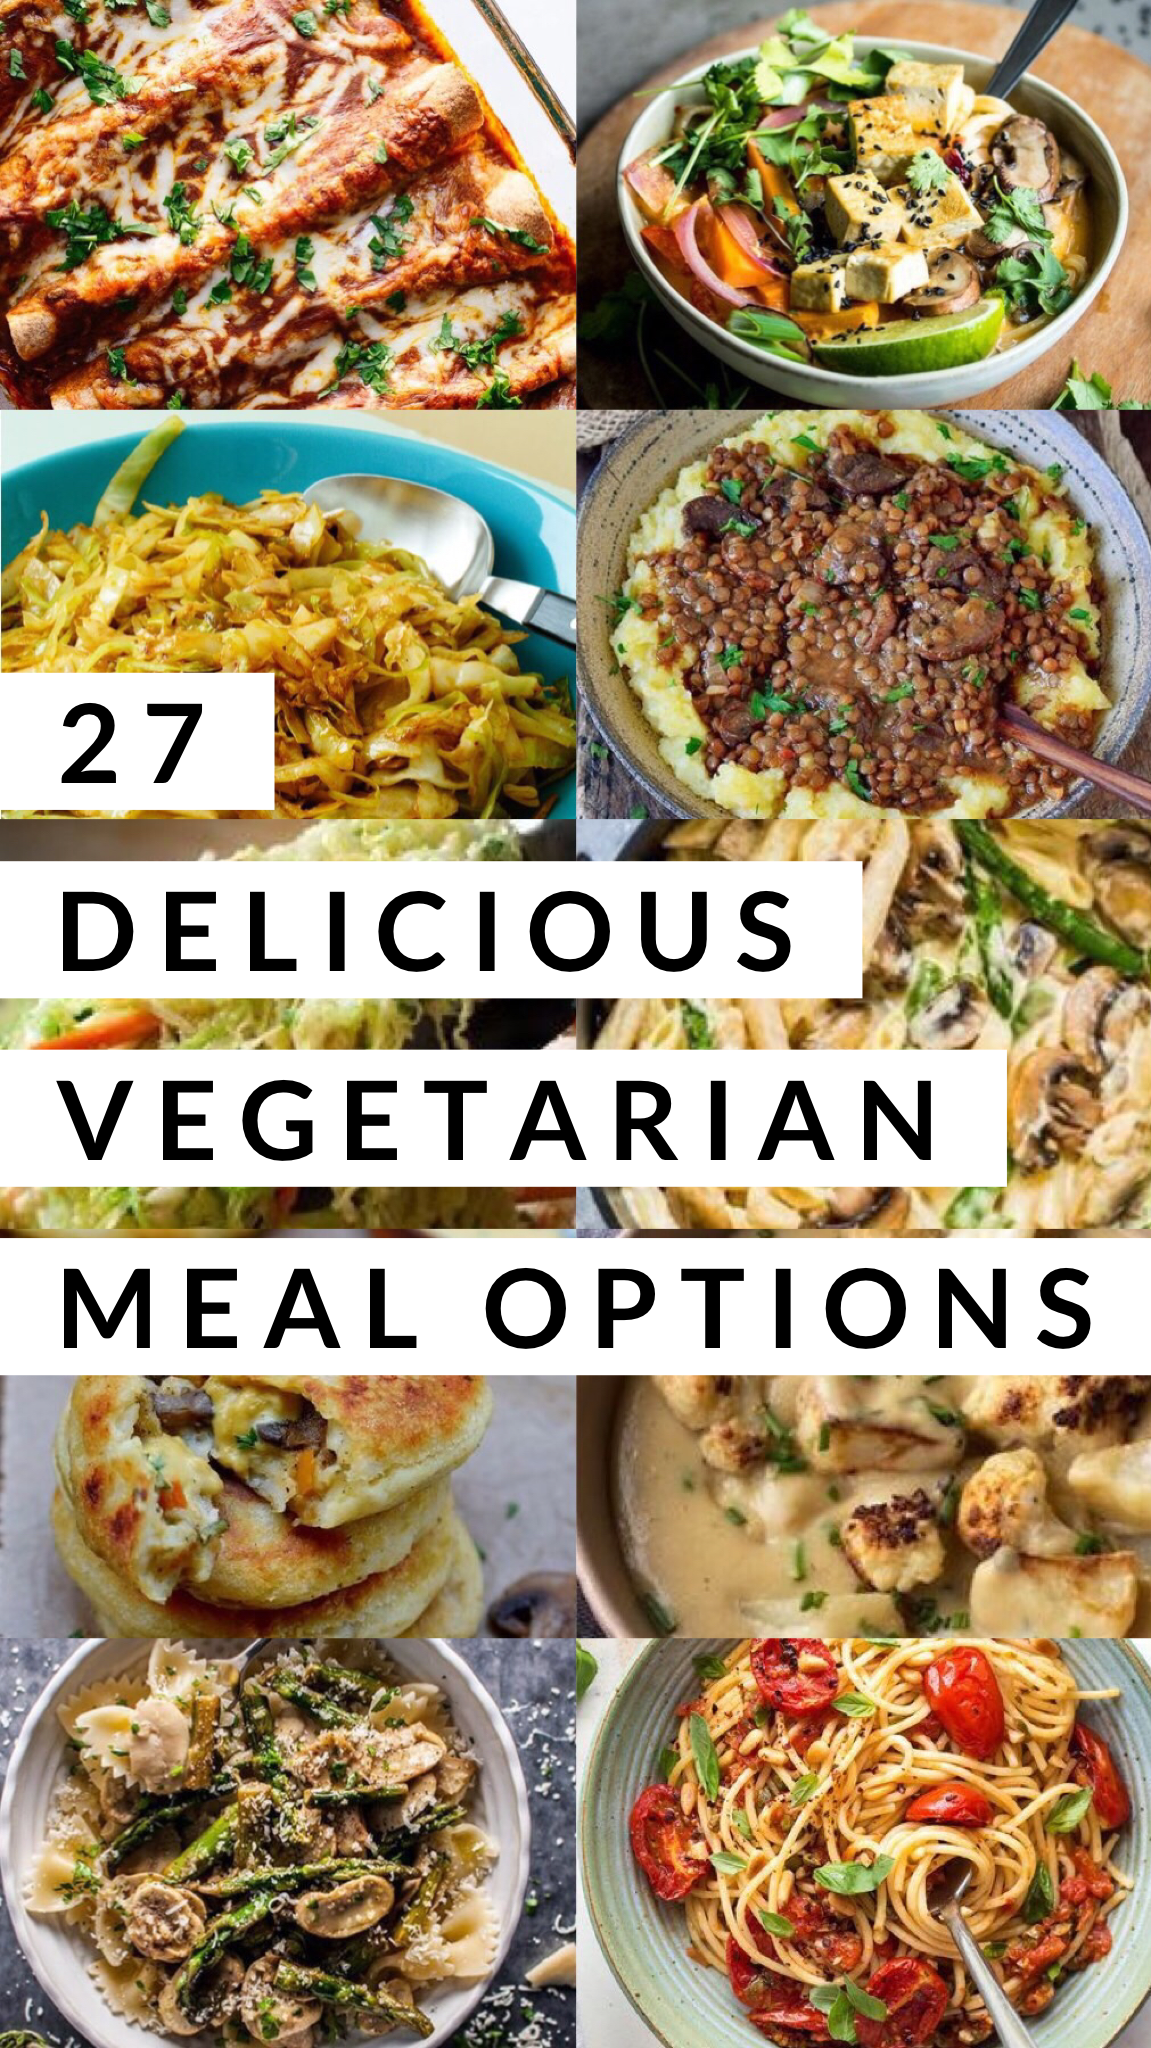 27 Delicious Vegetarian Meal Options images